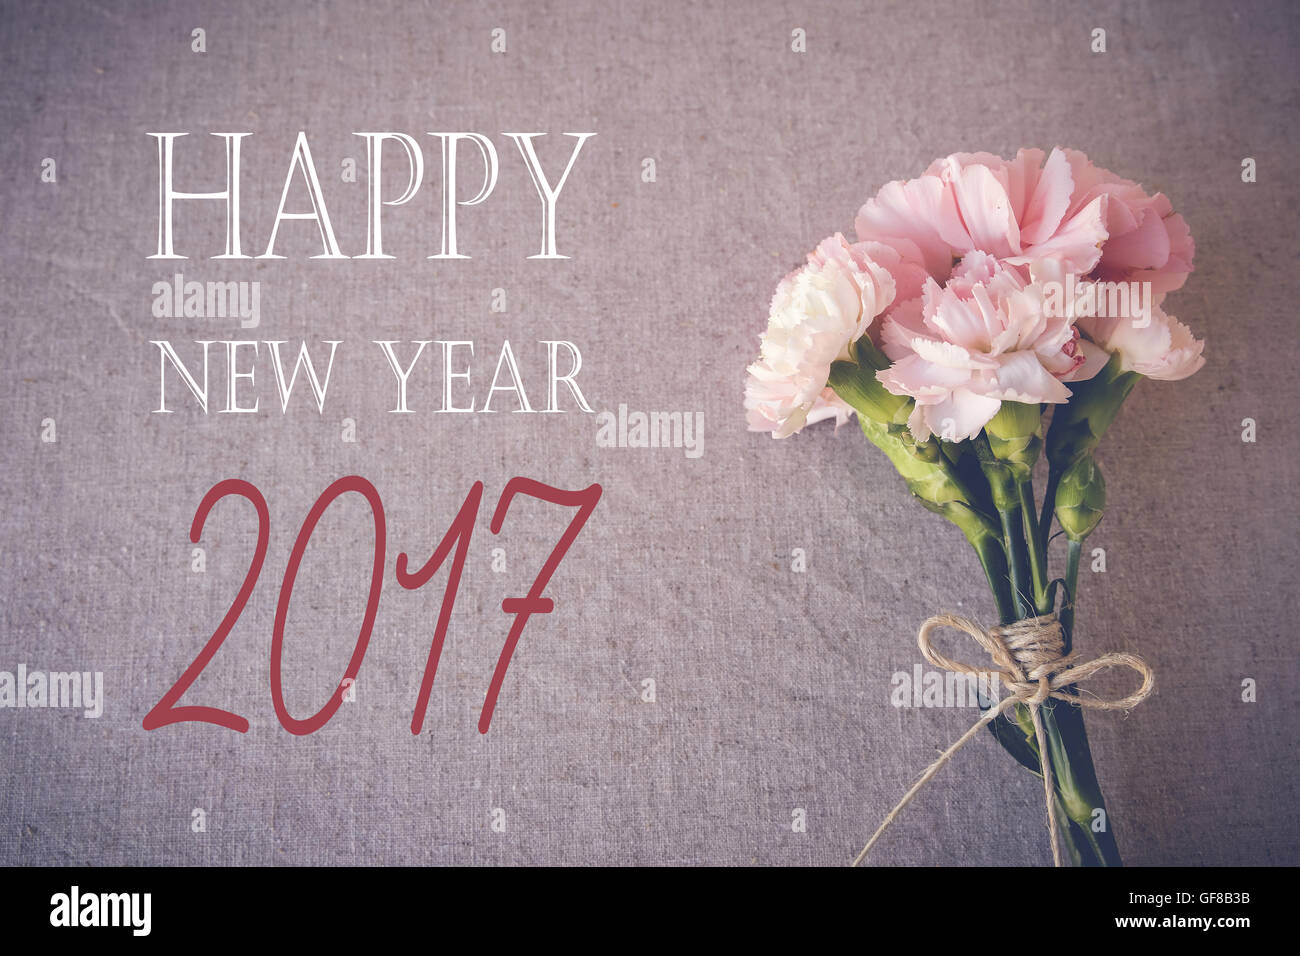 happy new year 2017 with pink carnation flowers bouquet toning background